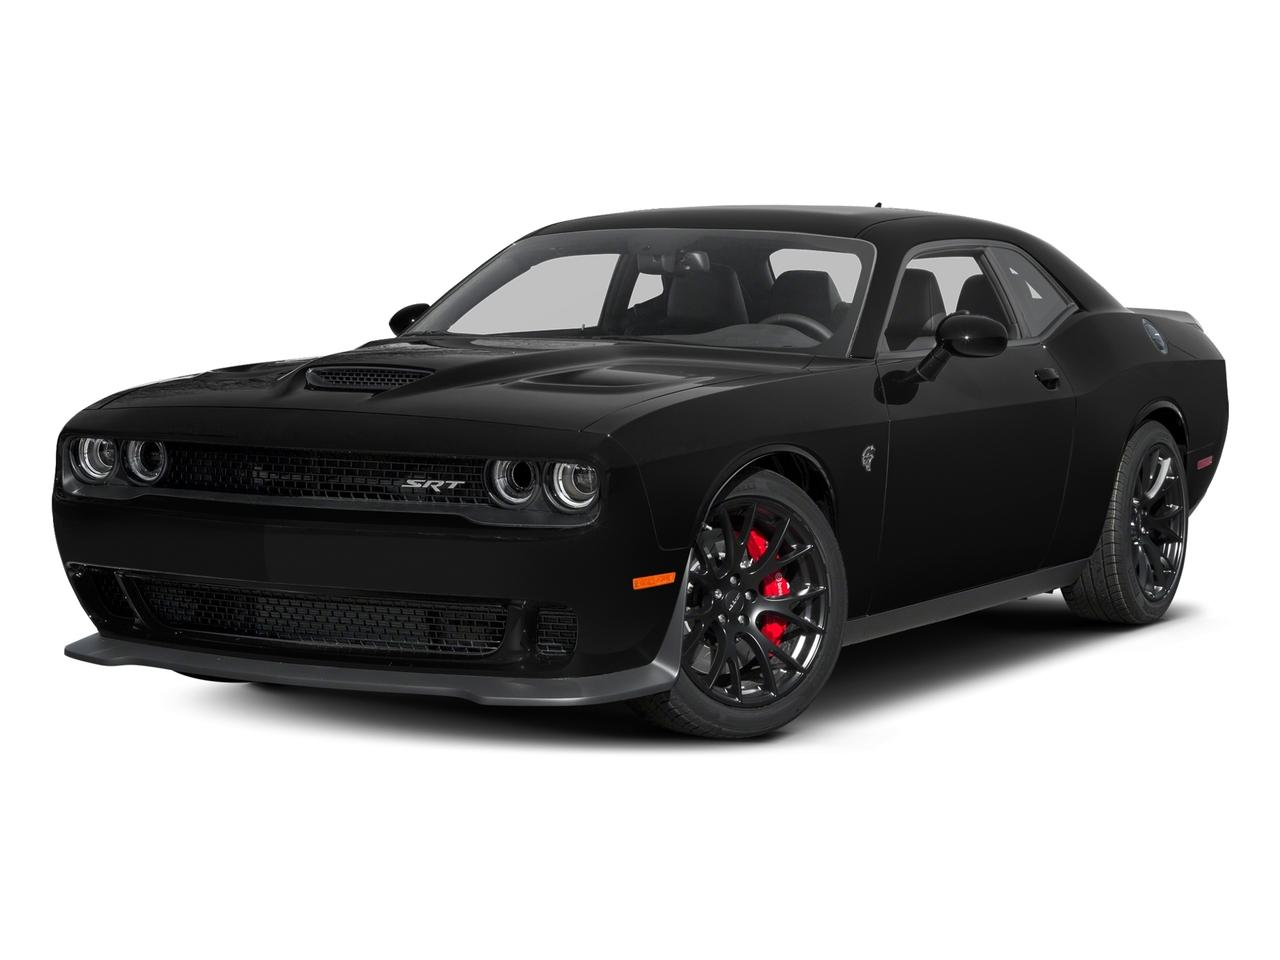 2016 Dodge Challenger Vehicle Photo in TEMPLE, TX 76504-3447